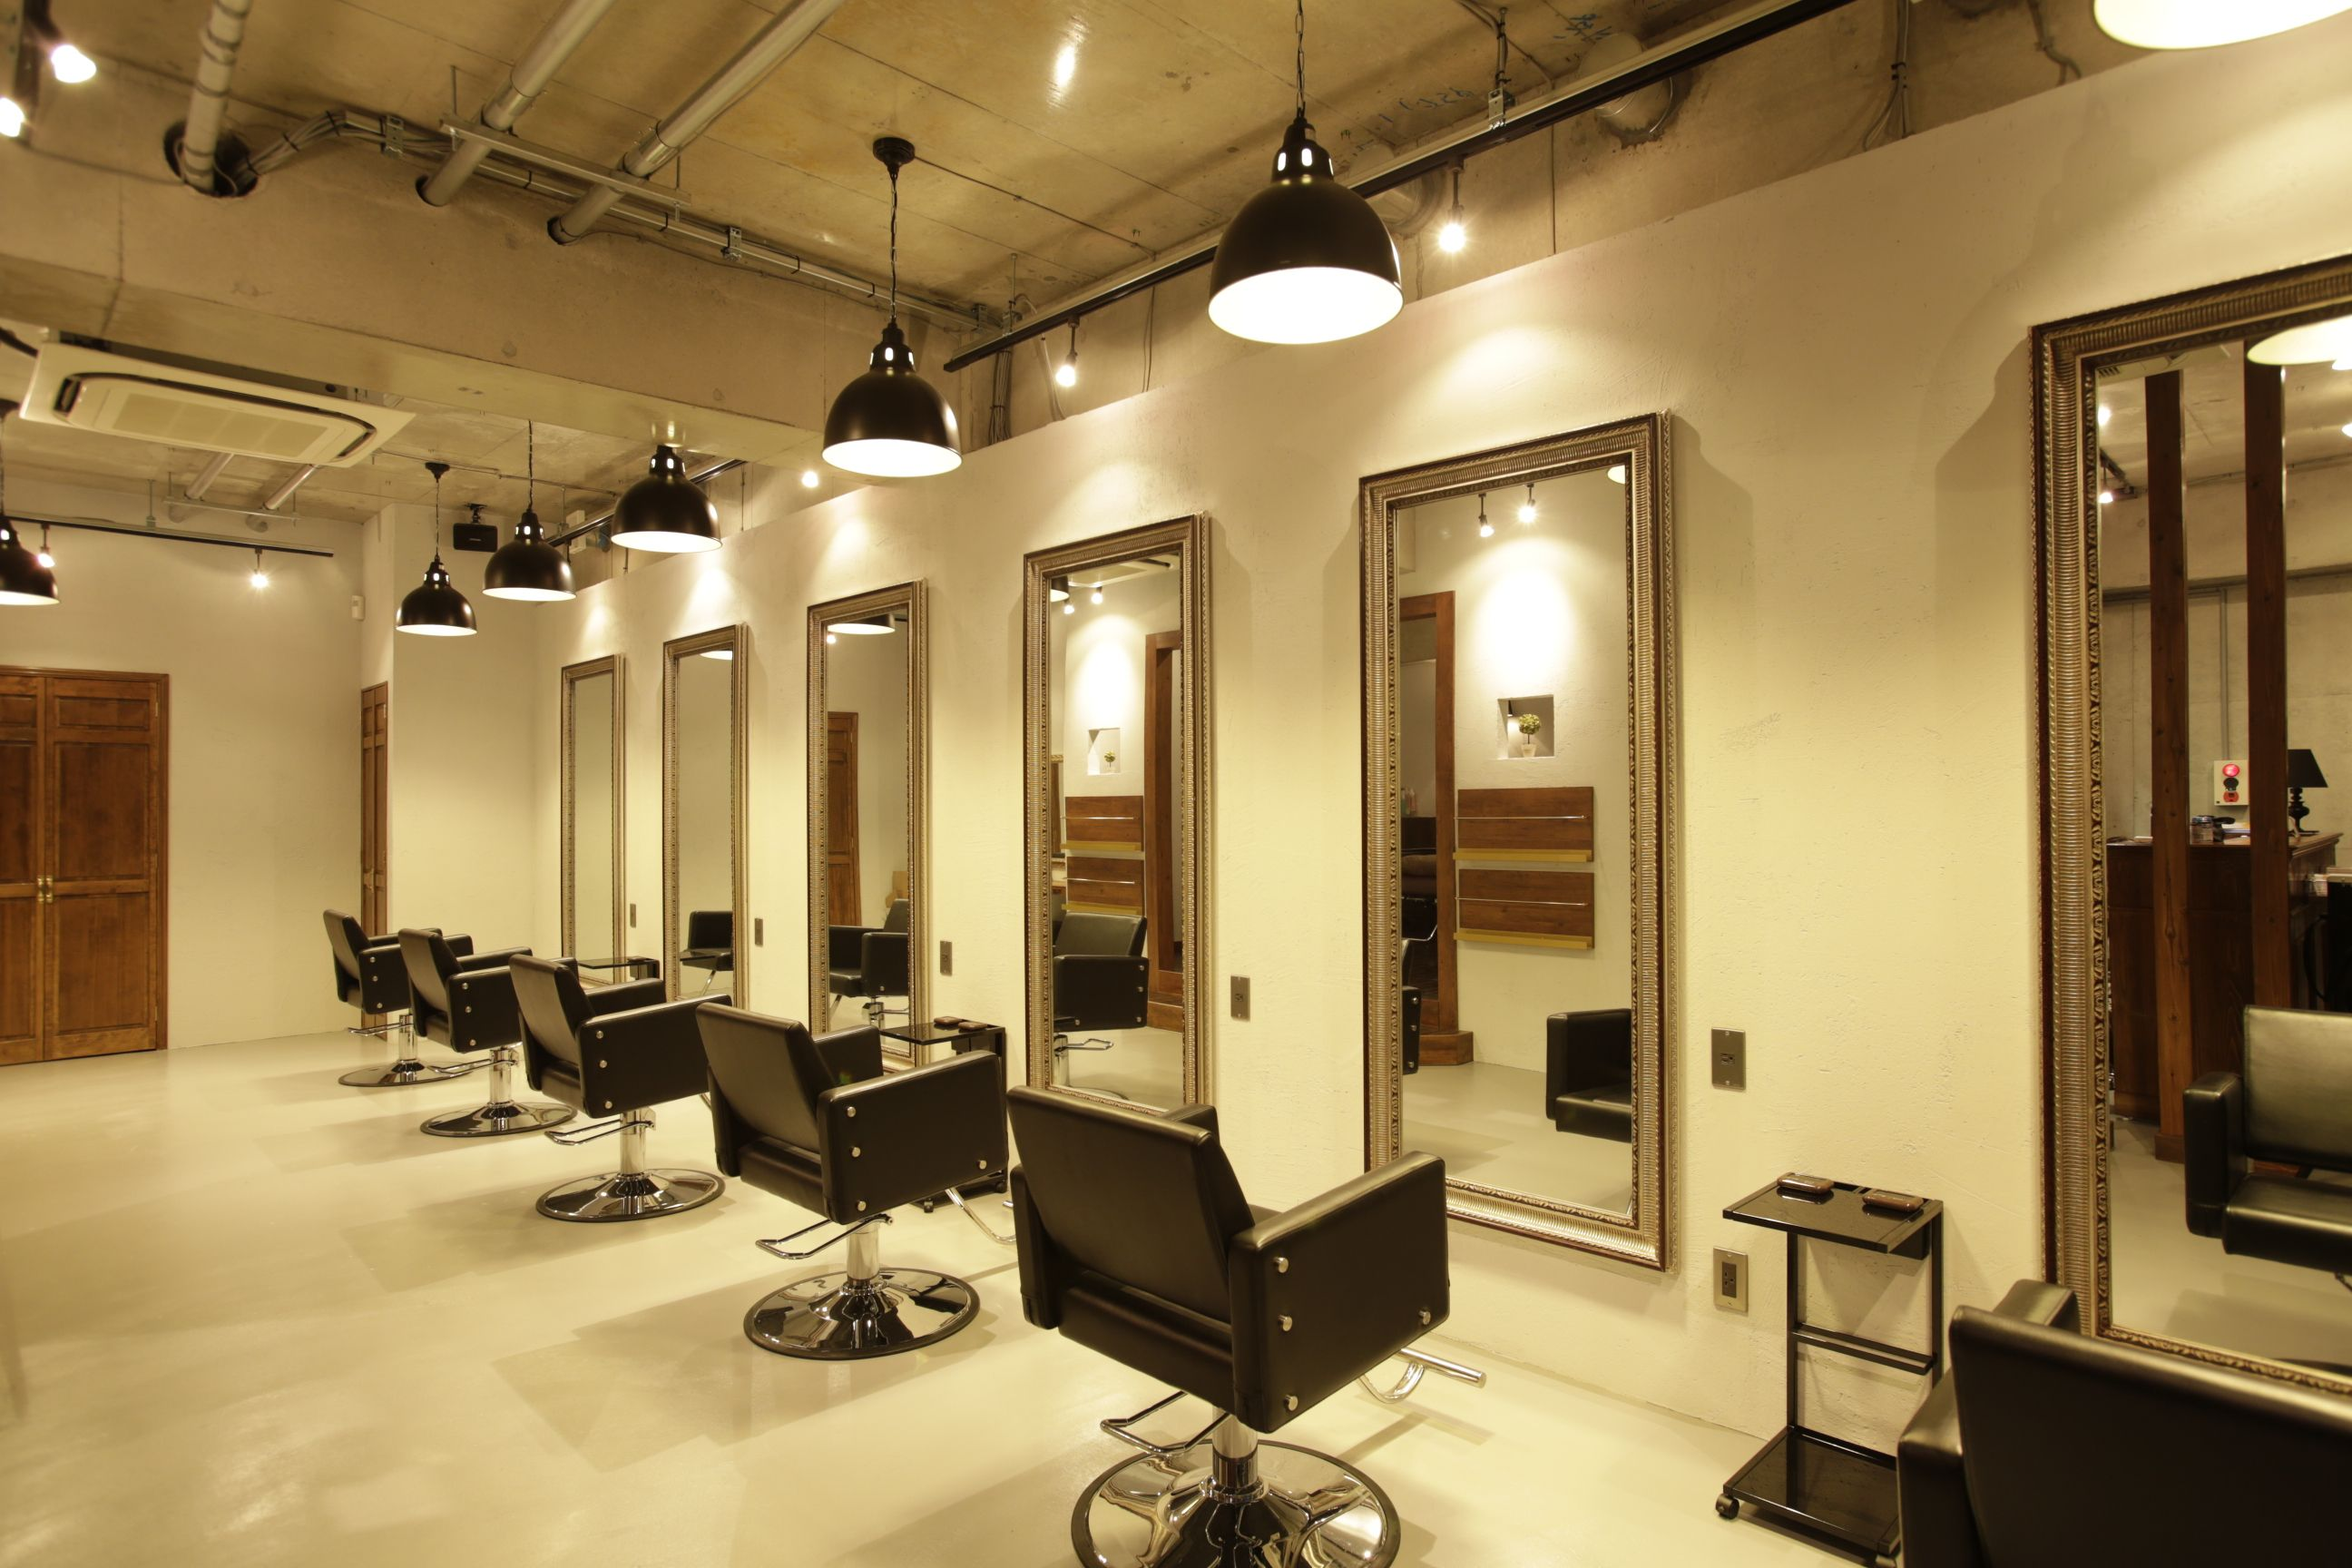 Beauty Salon Design Ideas interior designs for beauty salons monaco princesse poor little rich girl www beauty salon interior Beauty Salon Interior Design Ideas Hair Space Decor Designs Tokyo